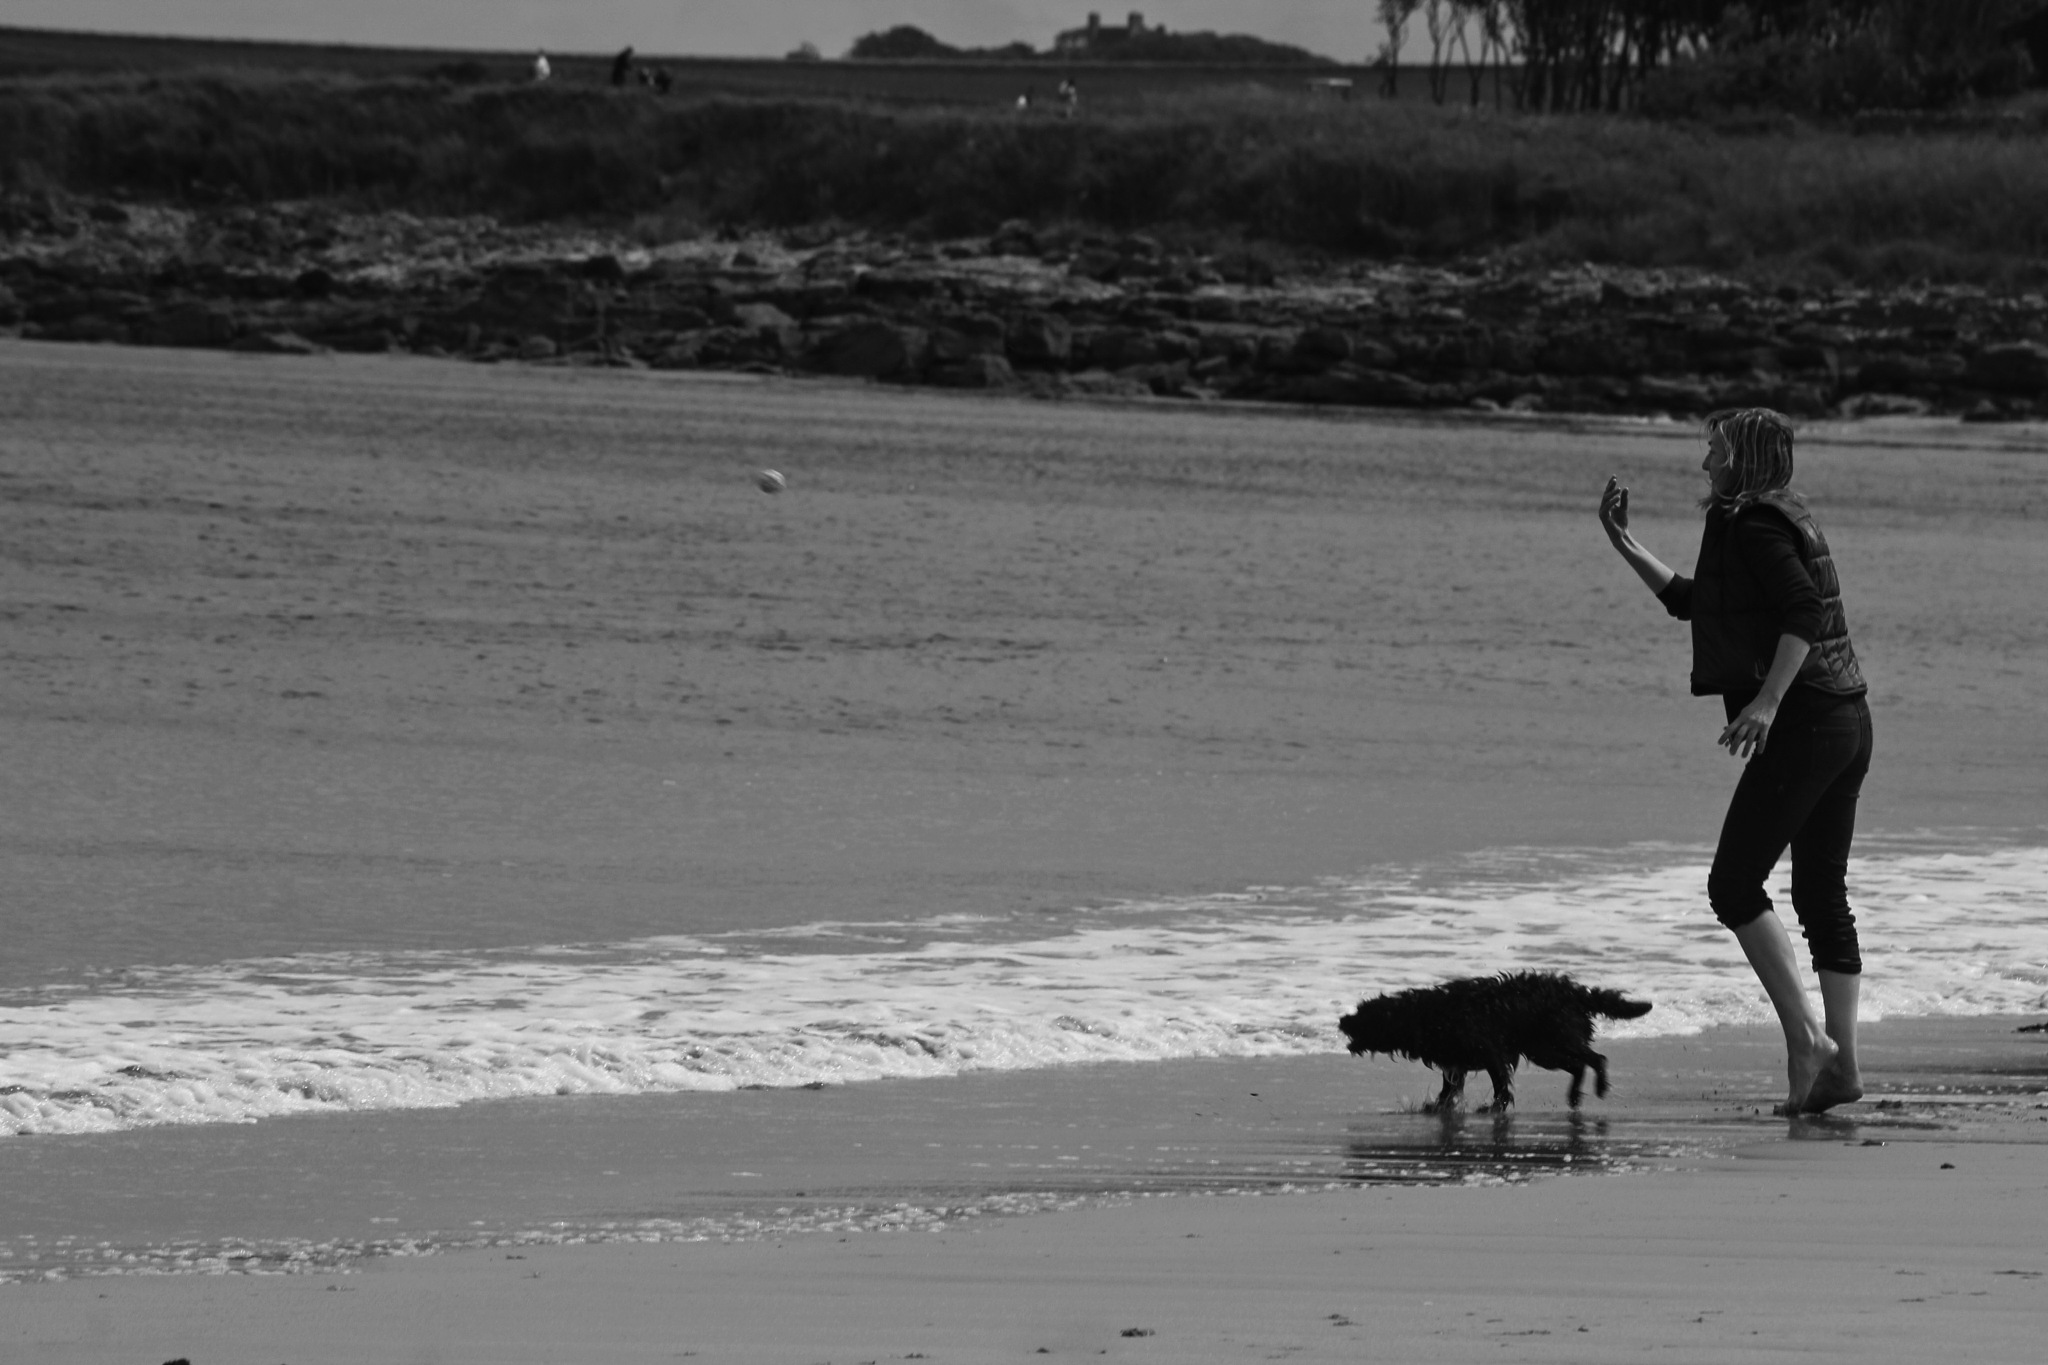 Dog, girl and beach by Rich66